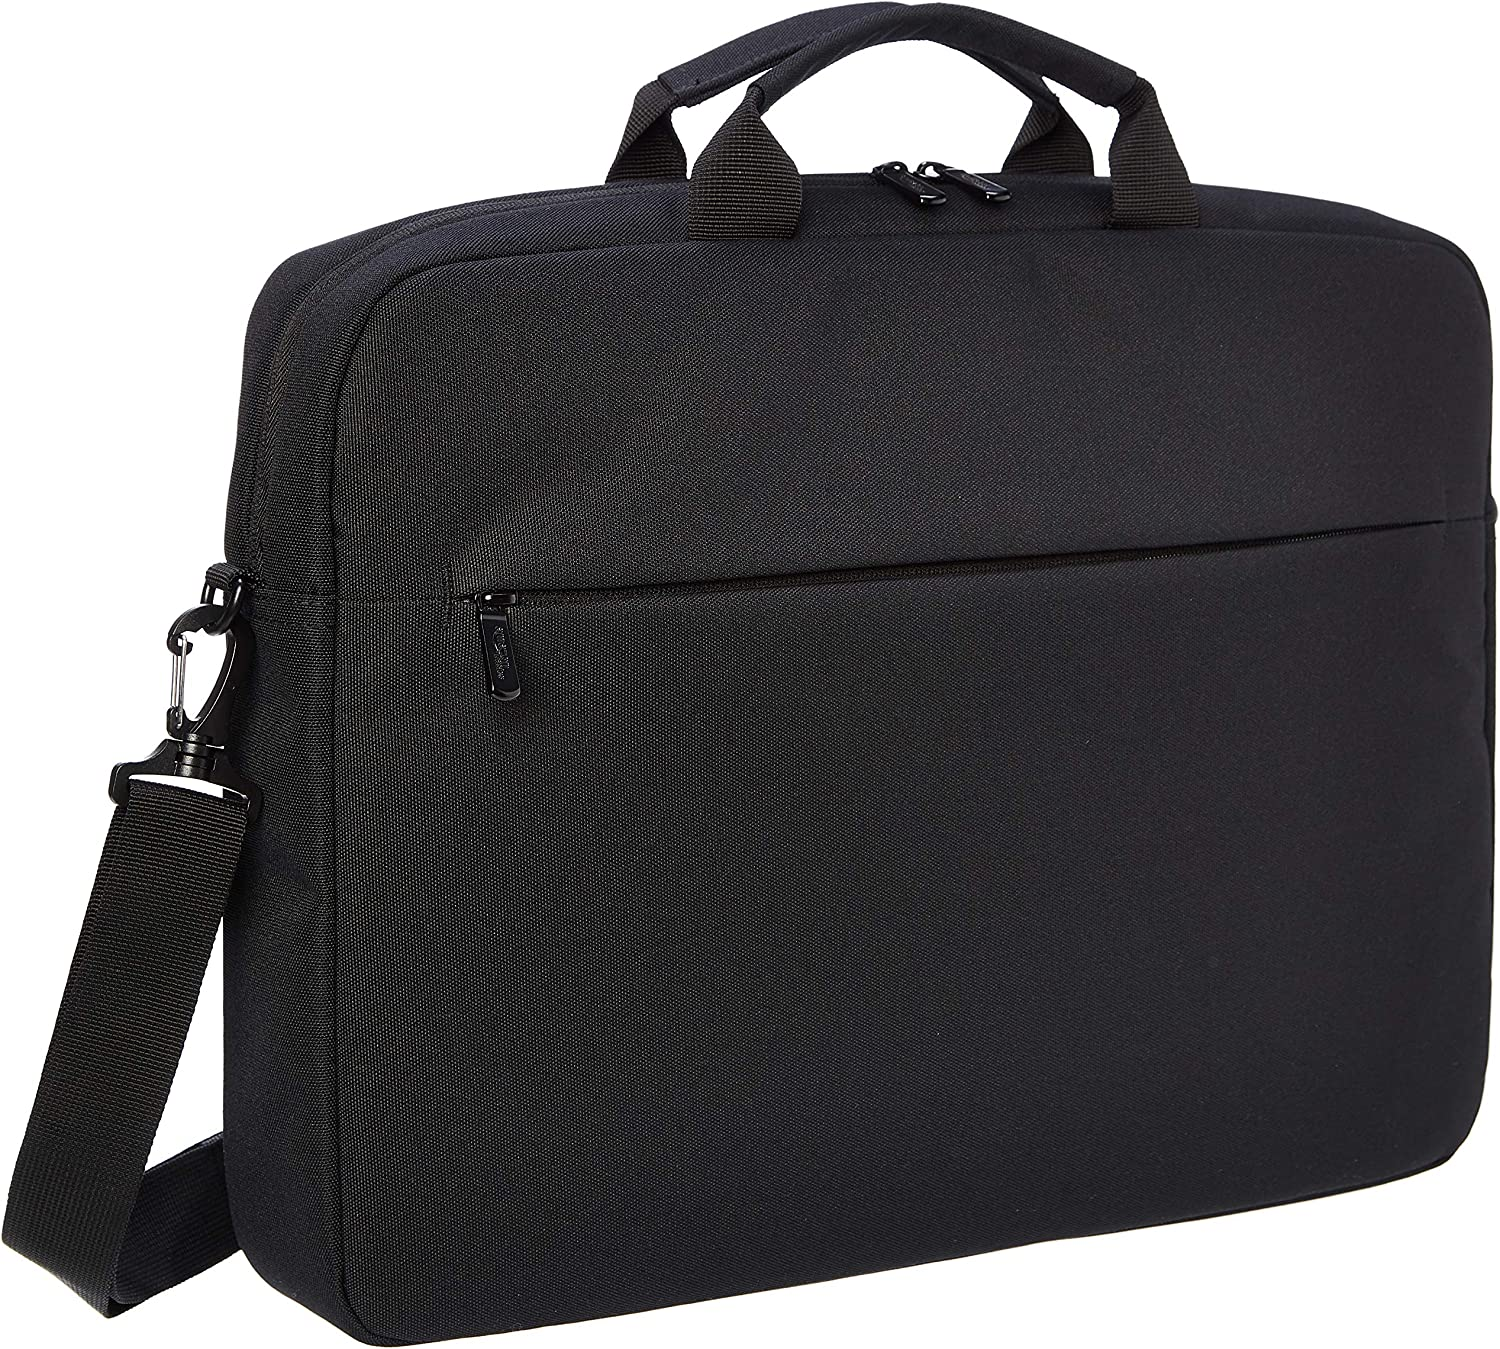 AmazonBasics Urban Laptop and Tablet Case Bag, 17 Inch, Black